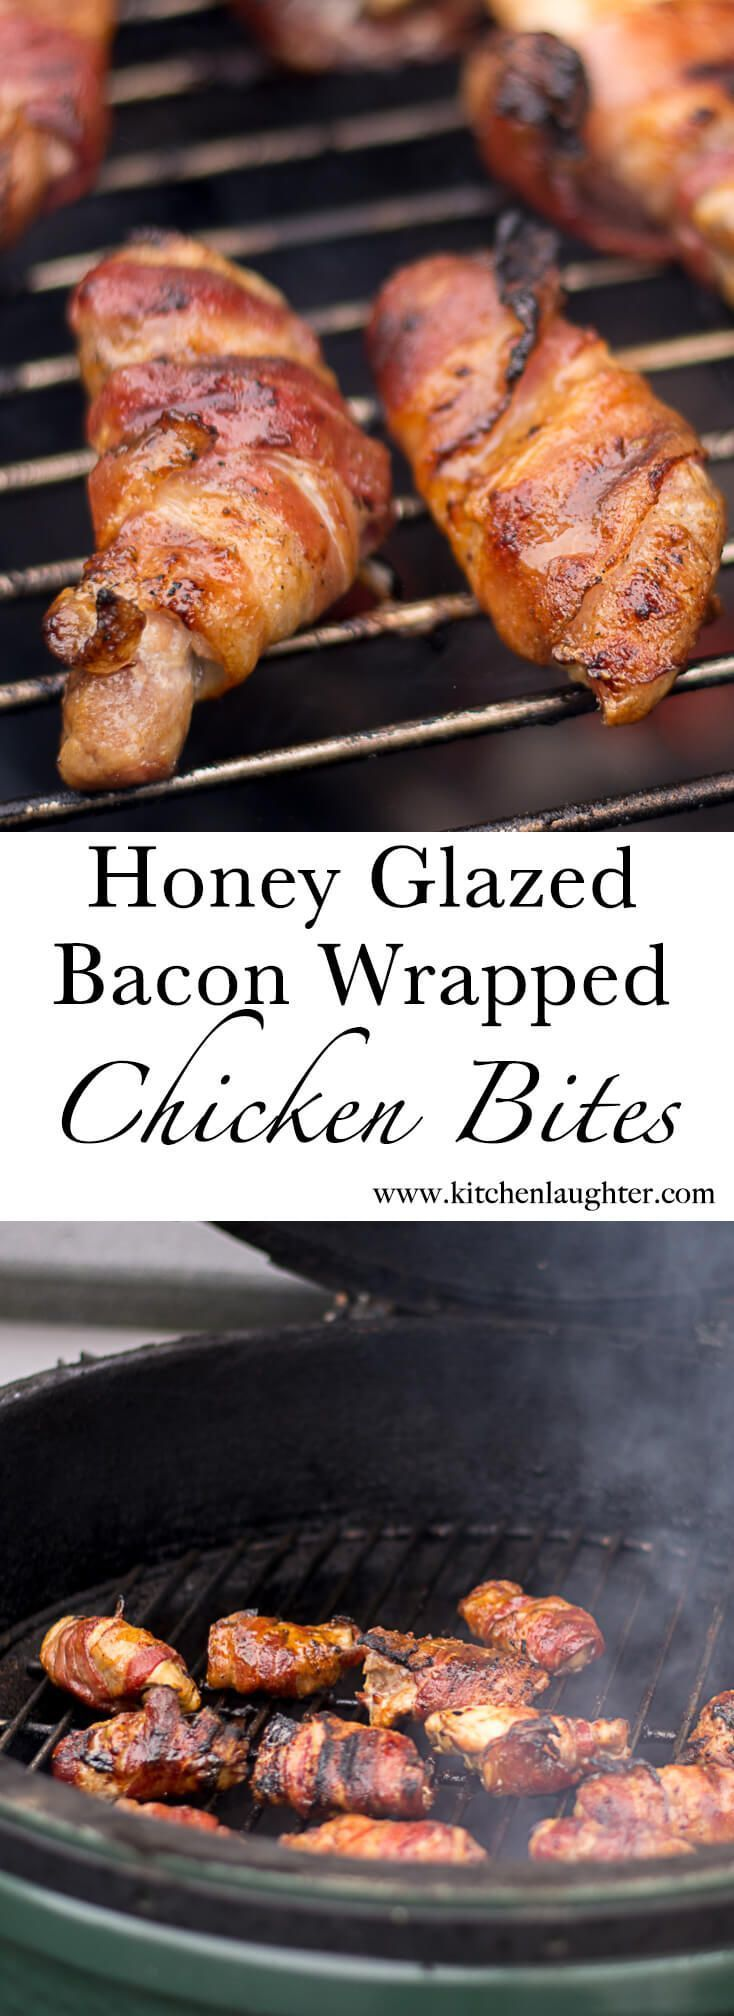 Honey Mustard Glazed Bacon Wrapped Chicken Bites